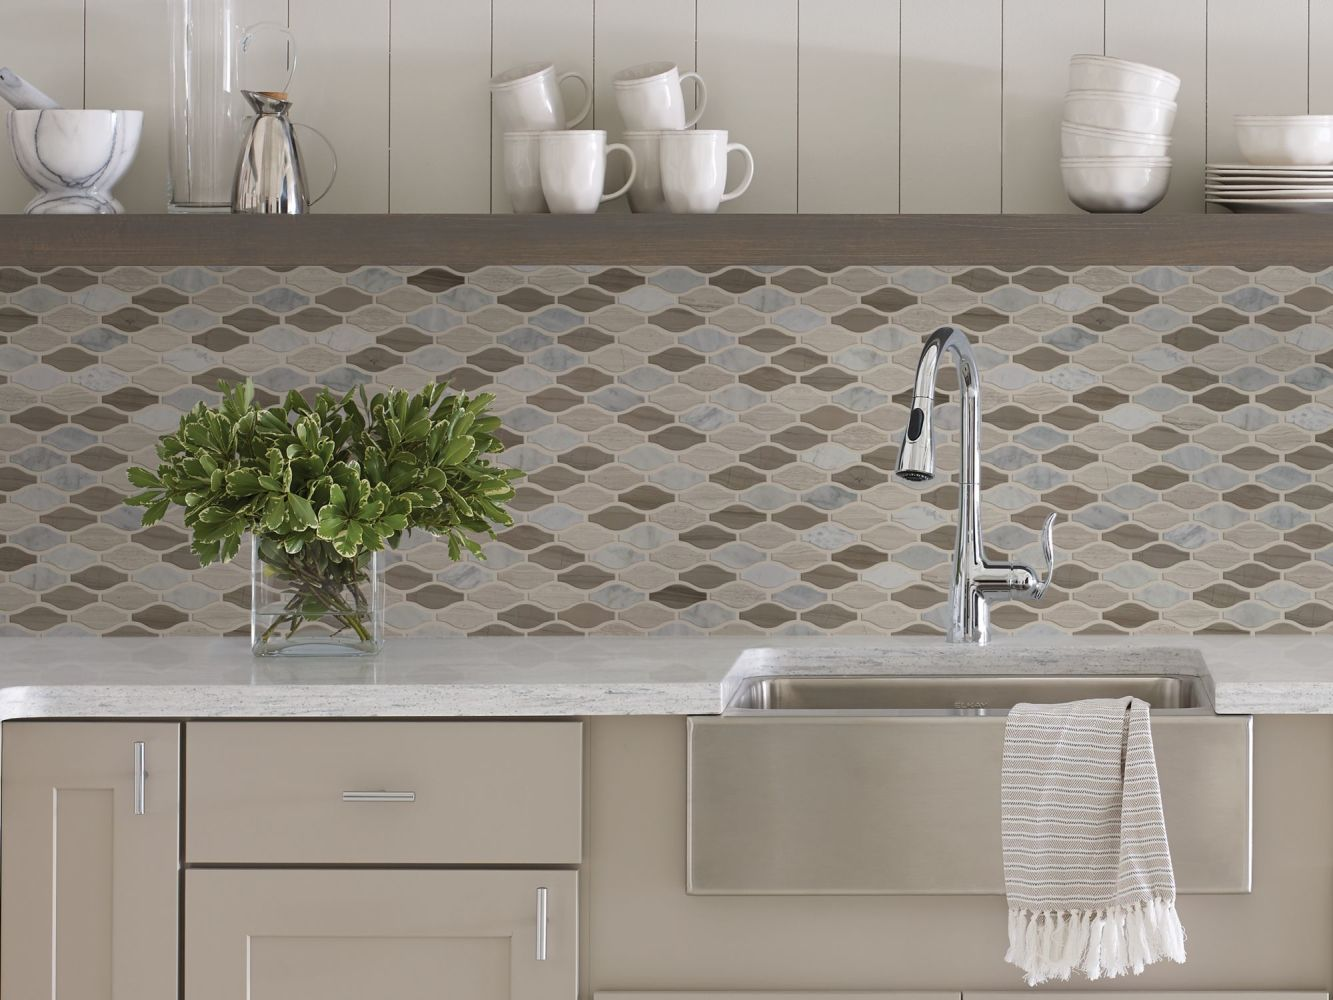 Shaw Floors Toll Brothers Ceramics Estate Ornt Mo Bianco C Rockw Urba 00125_TL89B